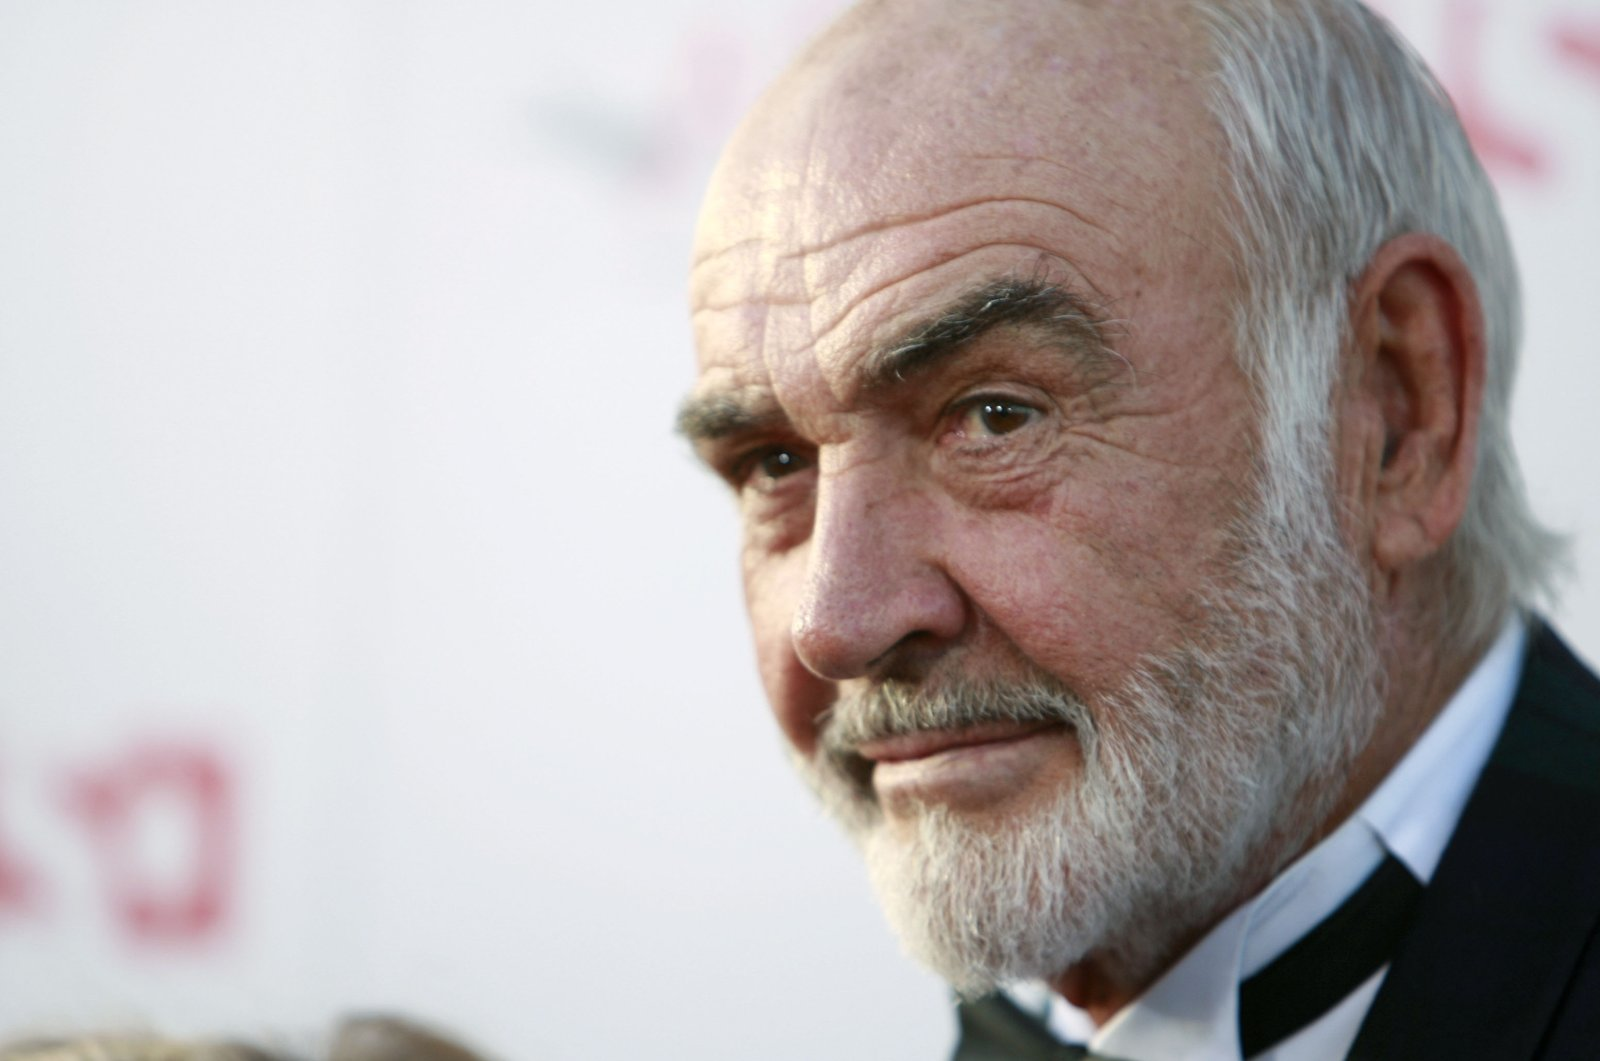 Sean Connery arrives at the American Film Institute Life Achievement Award event honoring Al Pacino in Los Angeles, California on June 7, 2007. (AP Photo)